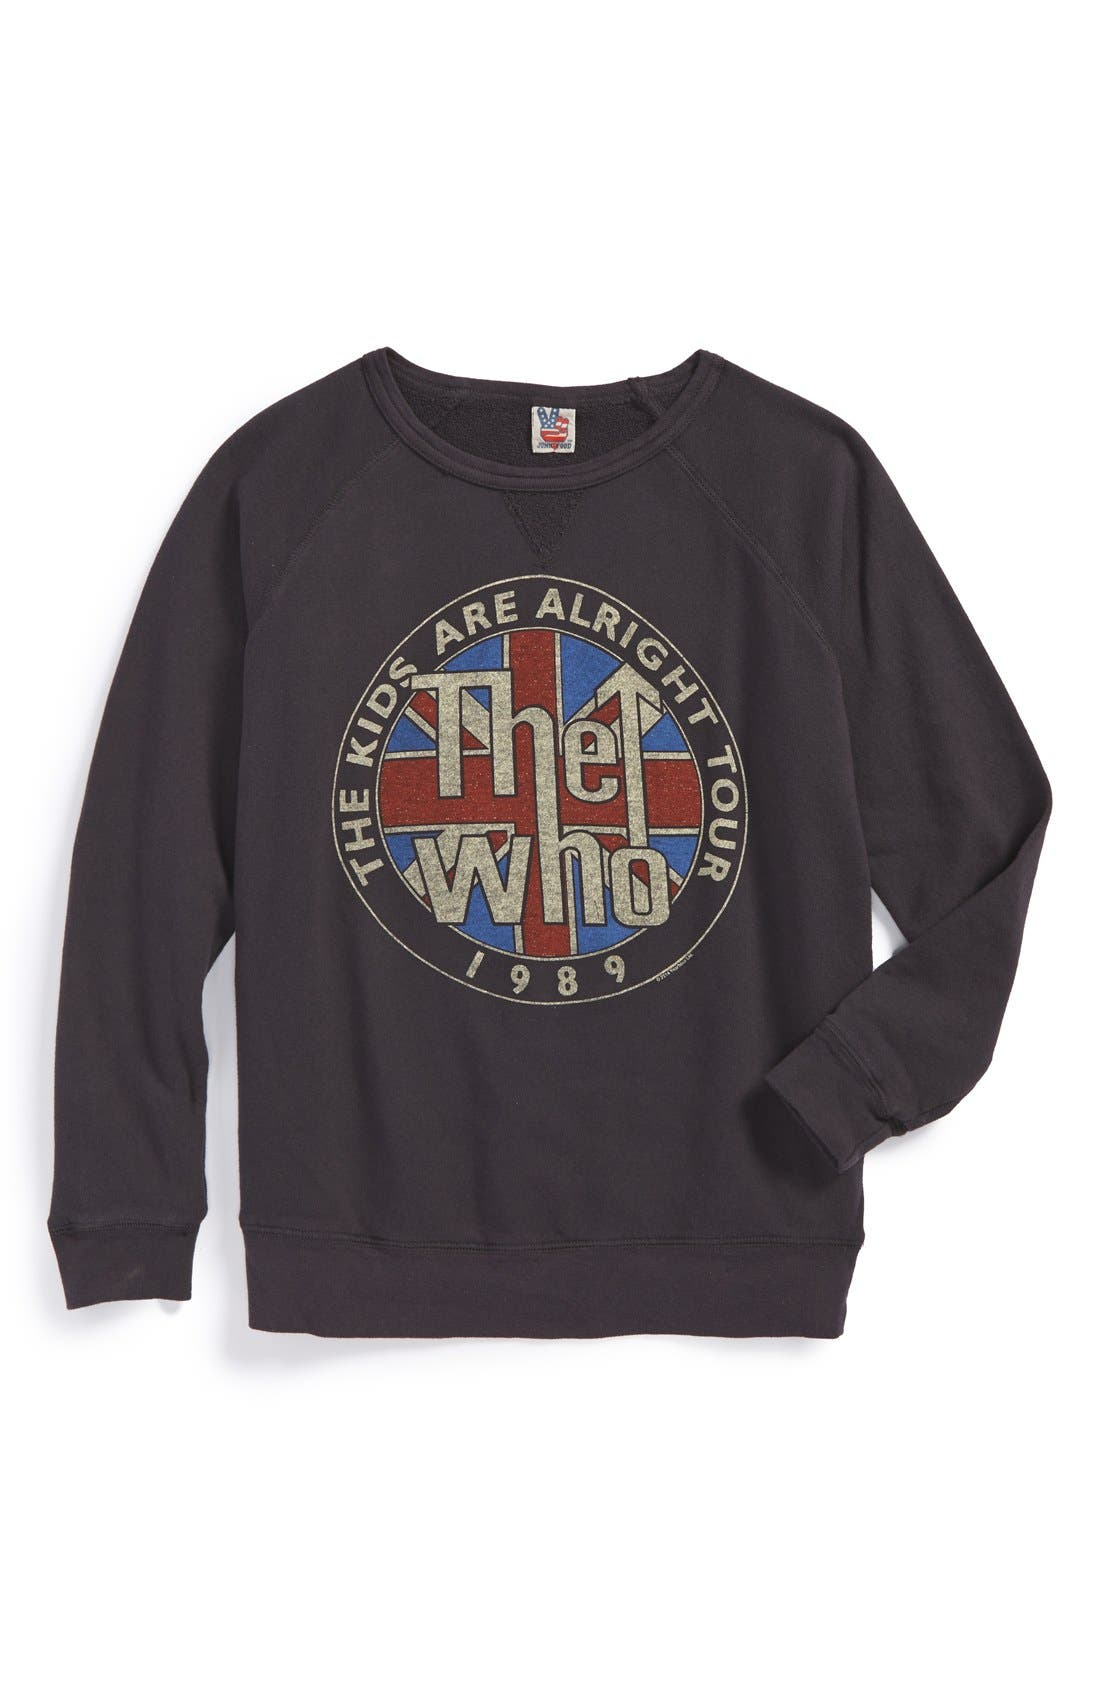 Alternate Image 1 Selected - Junk Food 'The Who' Graphic Lightweight Cotton Sweatshirt (Big Boys)